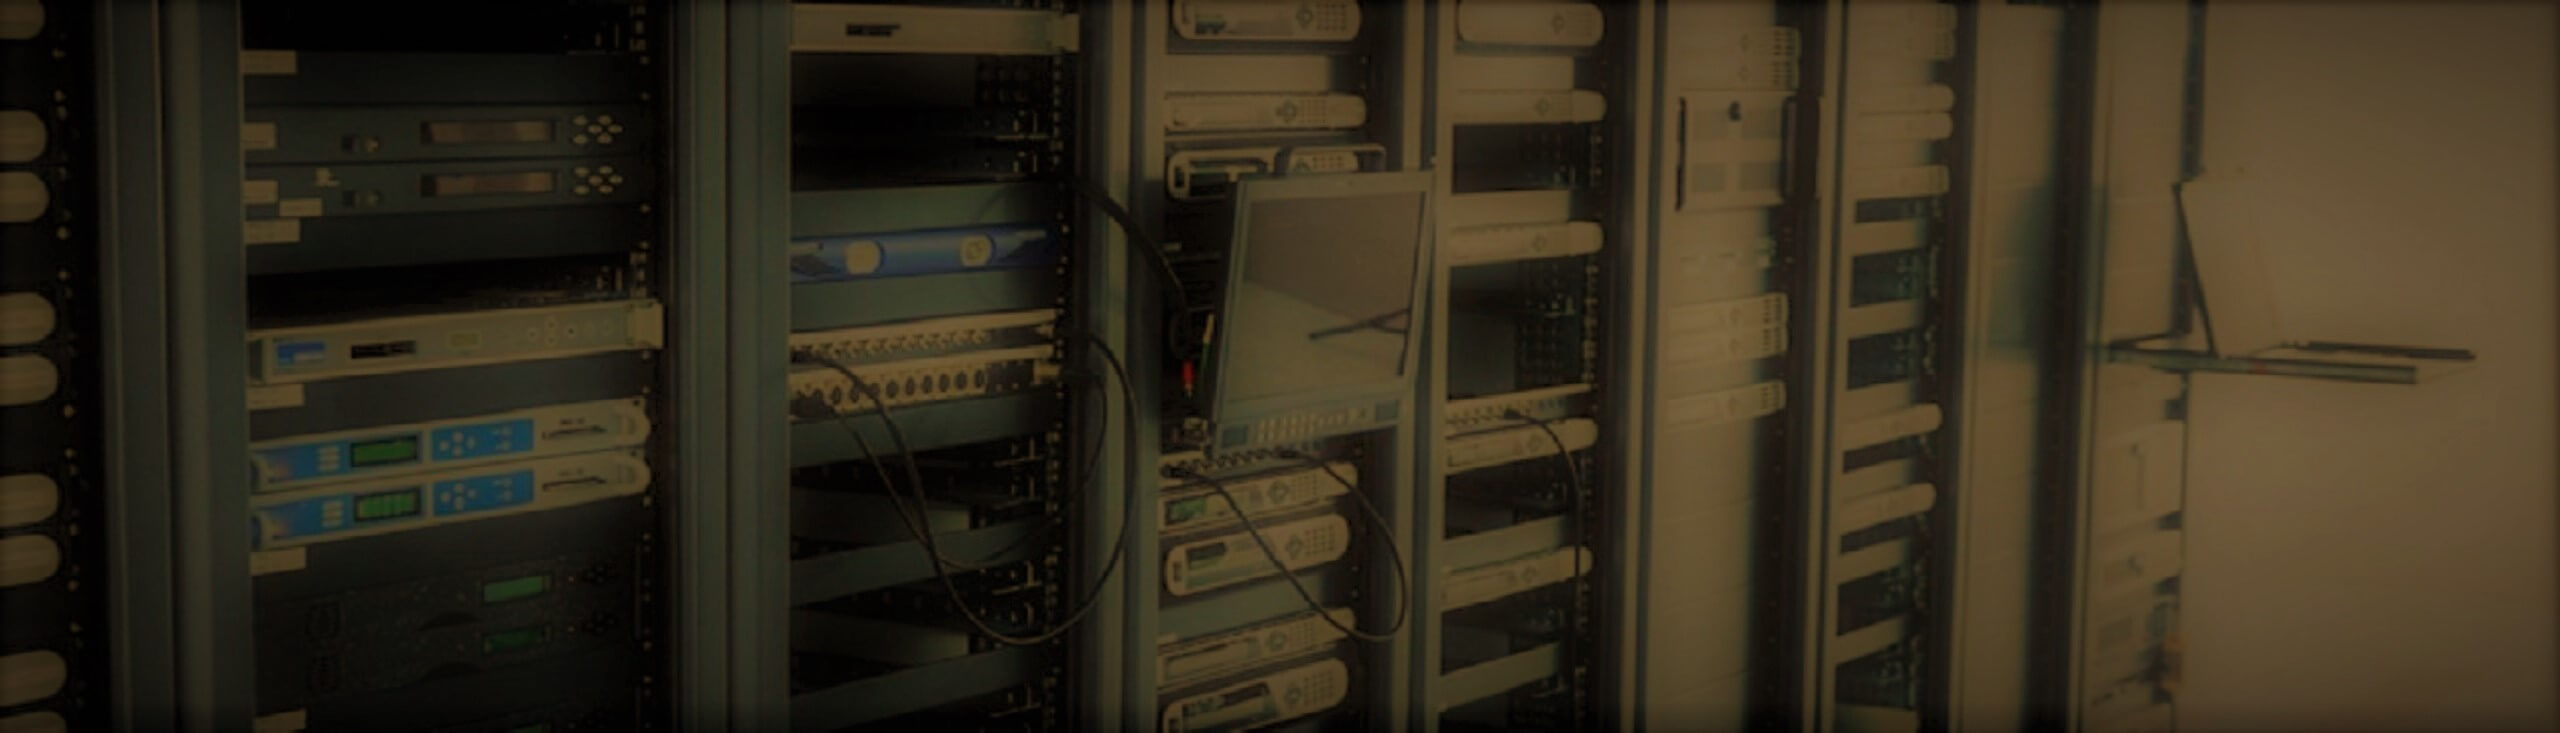 Premium Rdp I Vps I Dedicated Servers I Cloud Solutions Vps From 1 Per Month Worldwide Locations